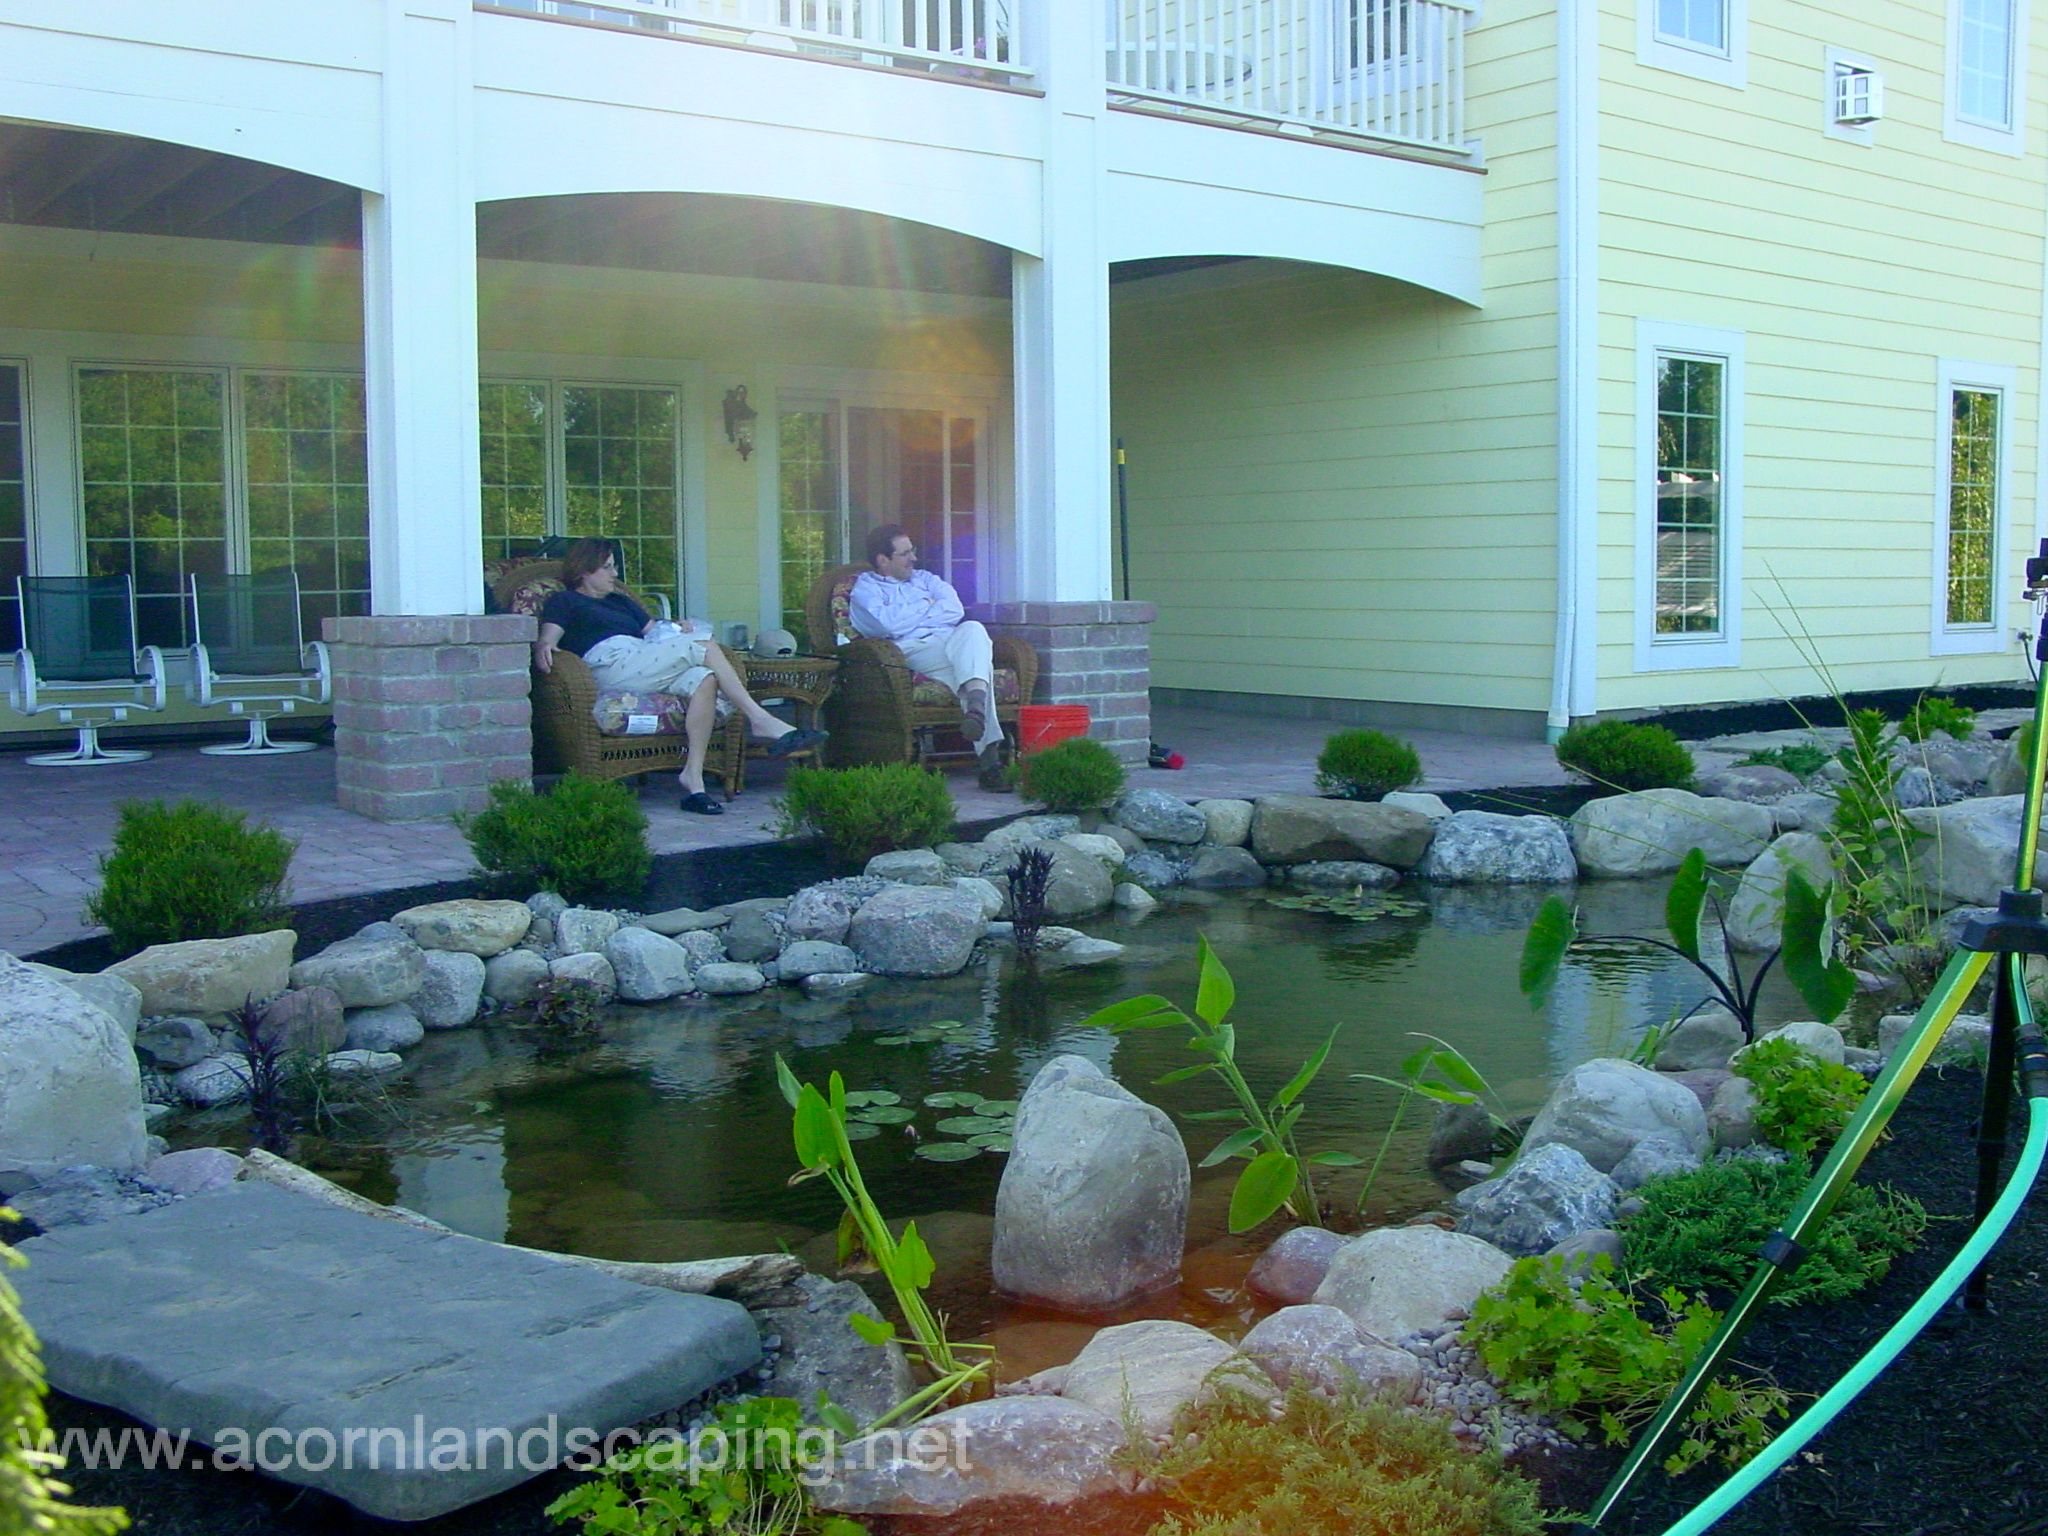 Pittsford NY Ecosystem Fish Pond Garden Pond Waterfall Pond